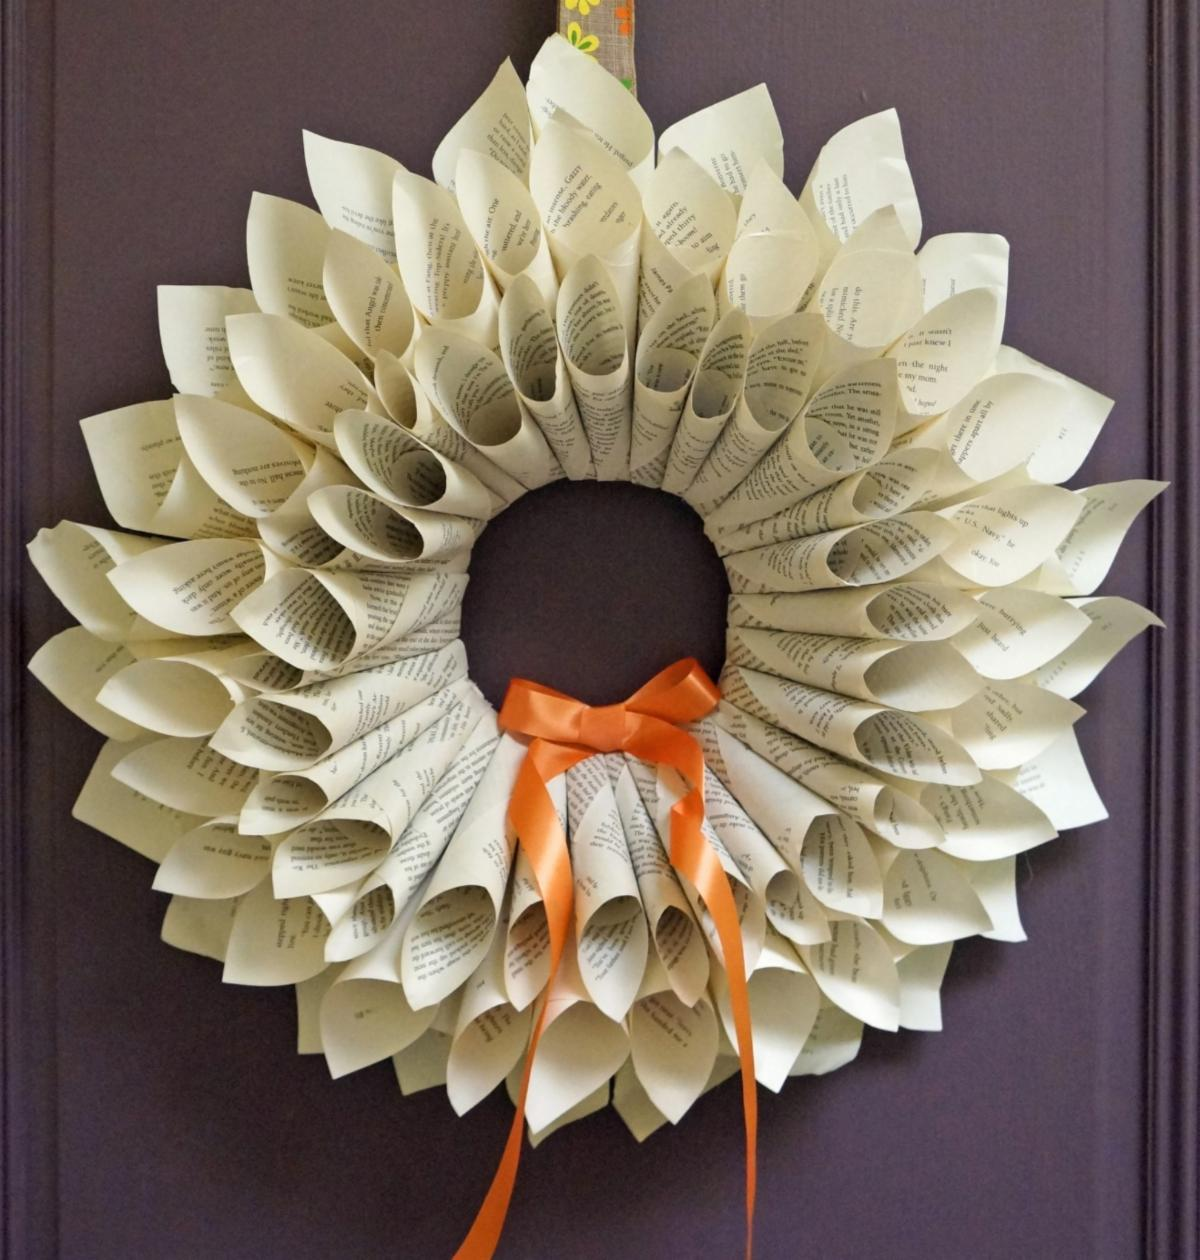 Wreath crafted with rolled book pages adorned with orange ribbon